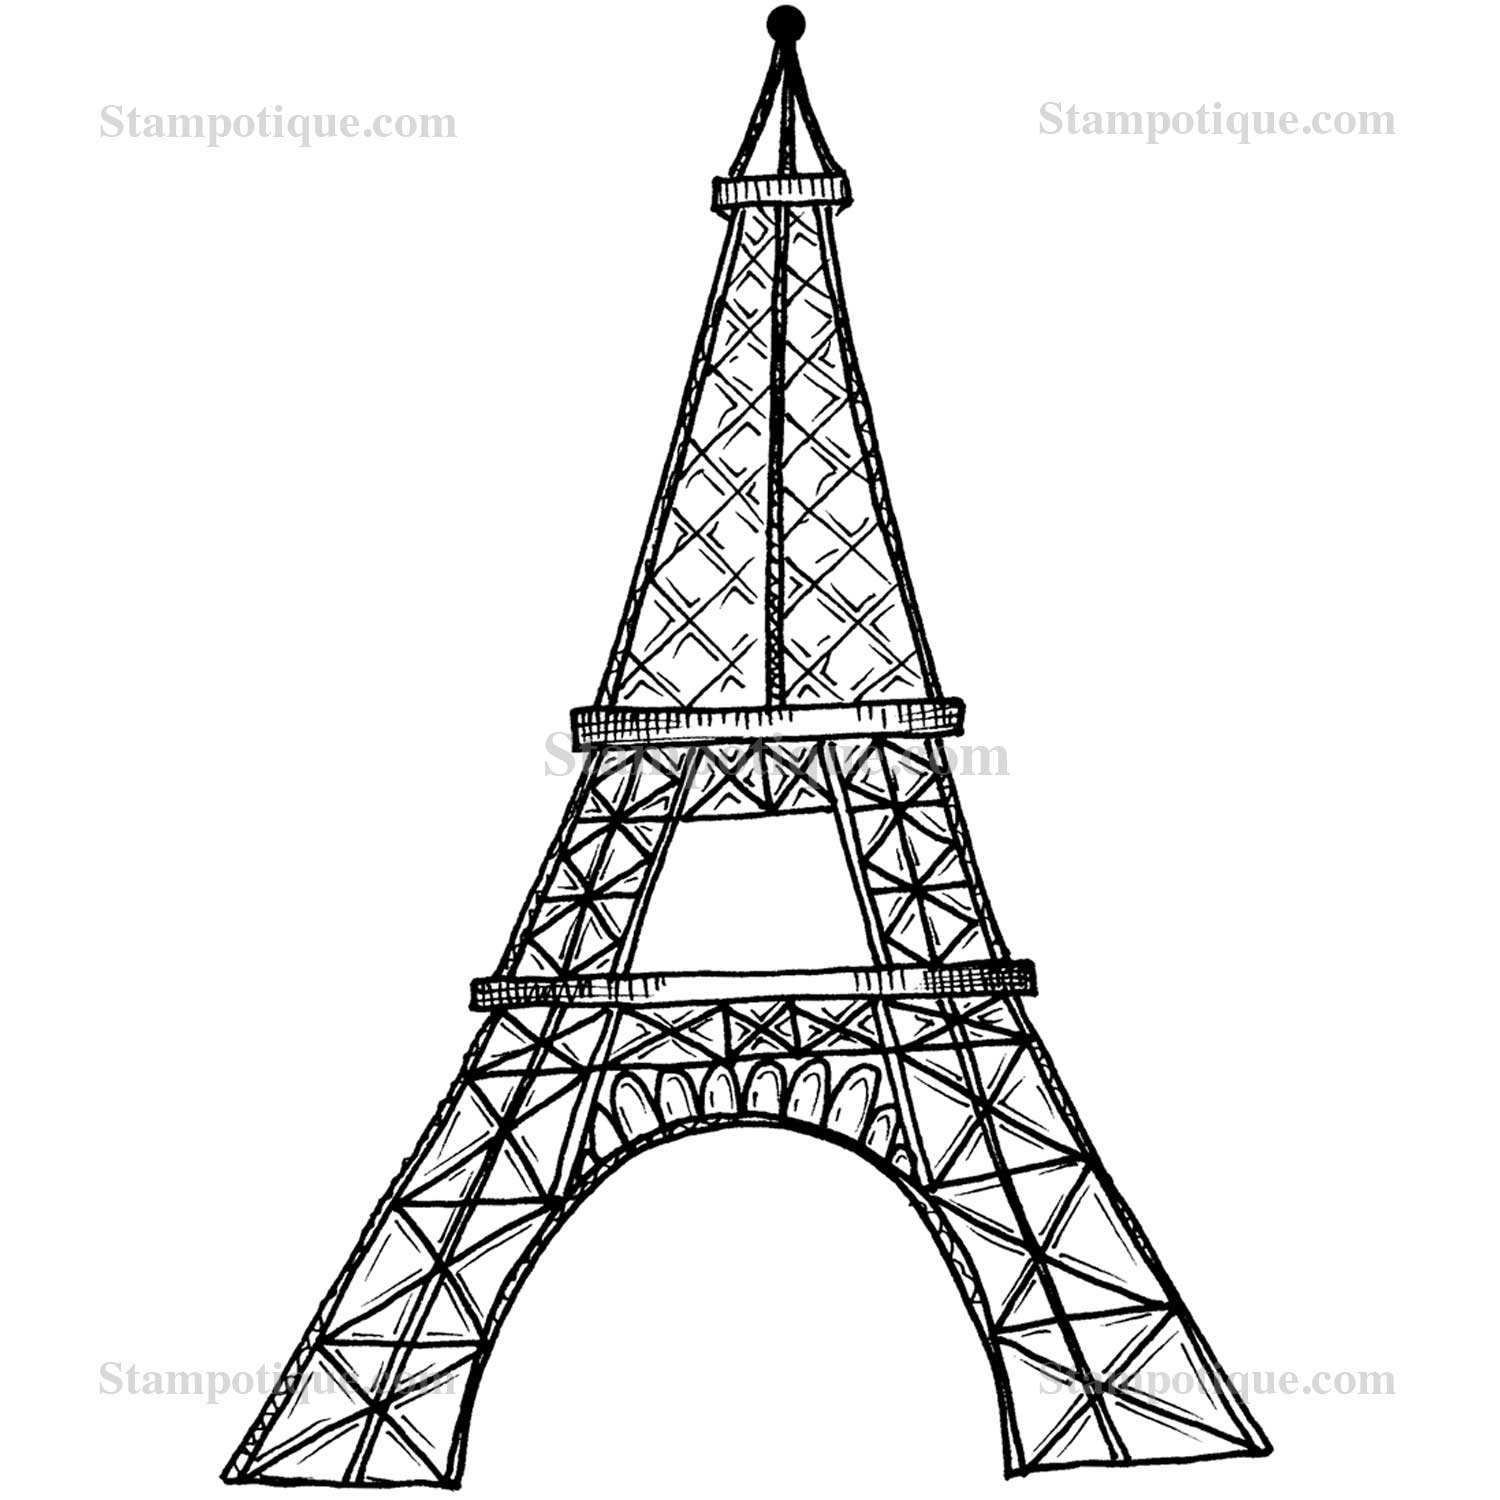 how to draw the eiffel tower easy step by step how to draw the eiffel tower step by step buildings the eiffel easy tower how to draw step by step